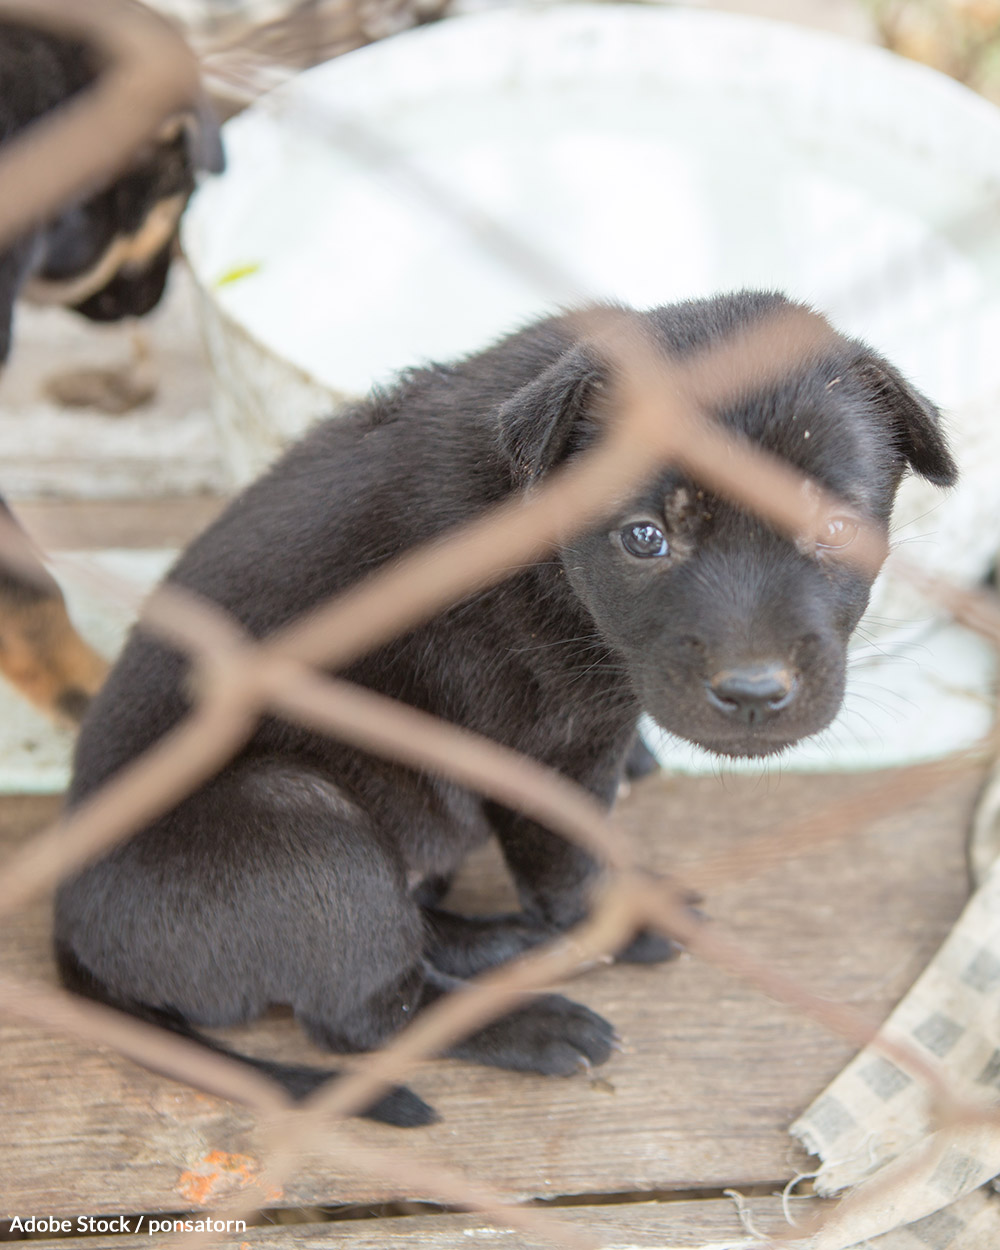 Many puppy mills are relicensed even after multiple AWA violations.